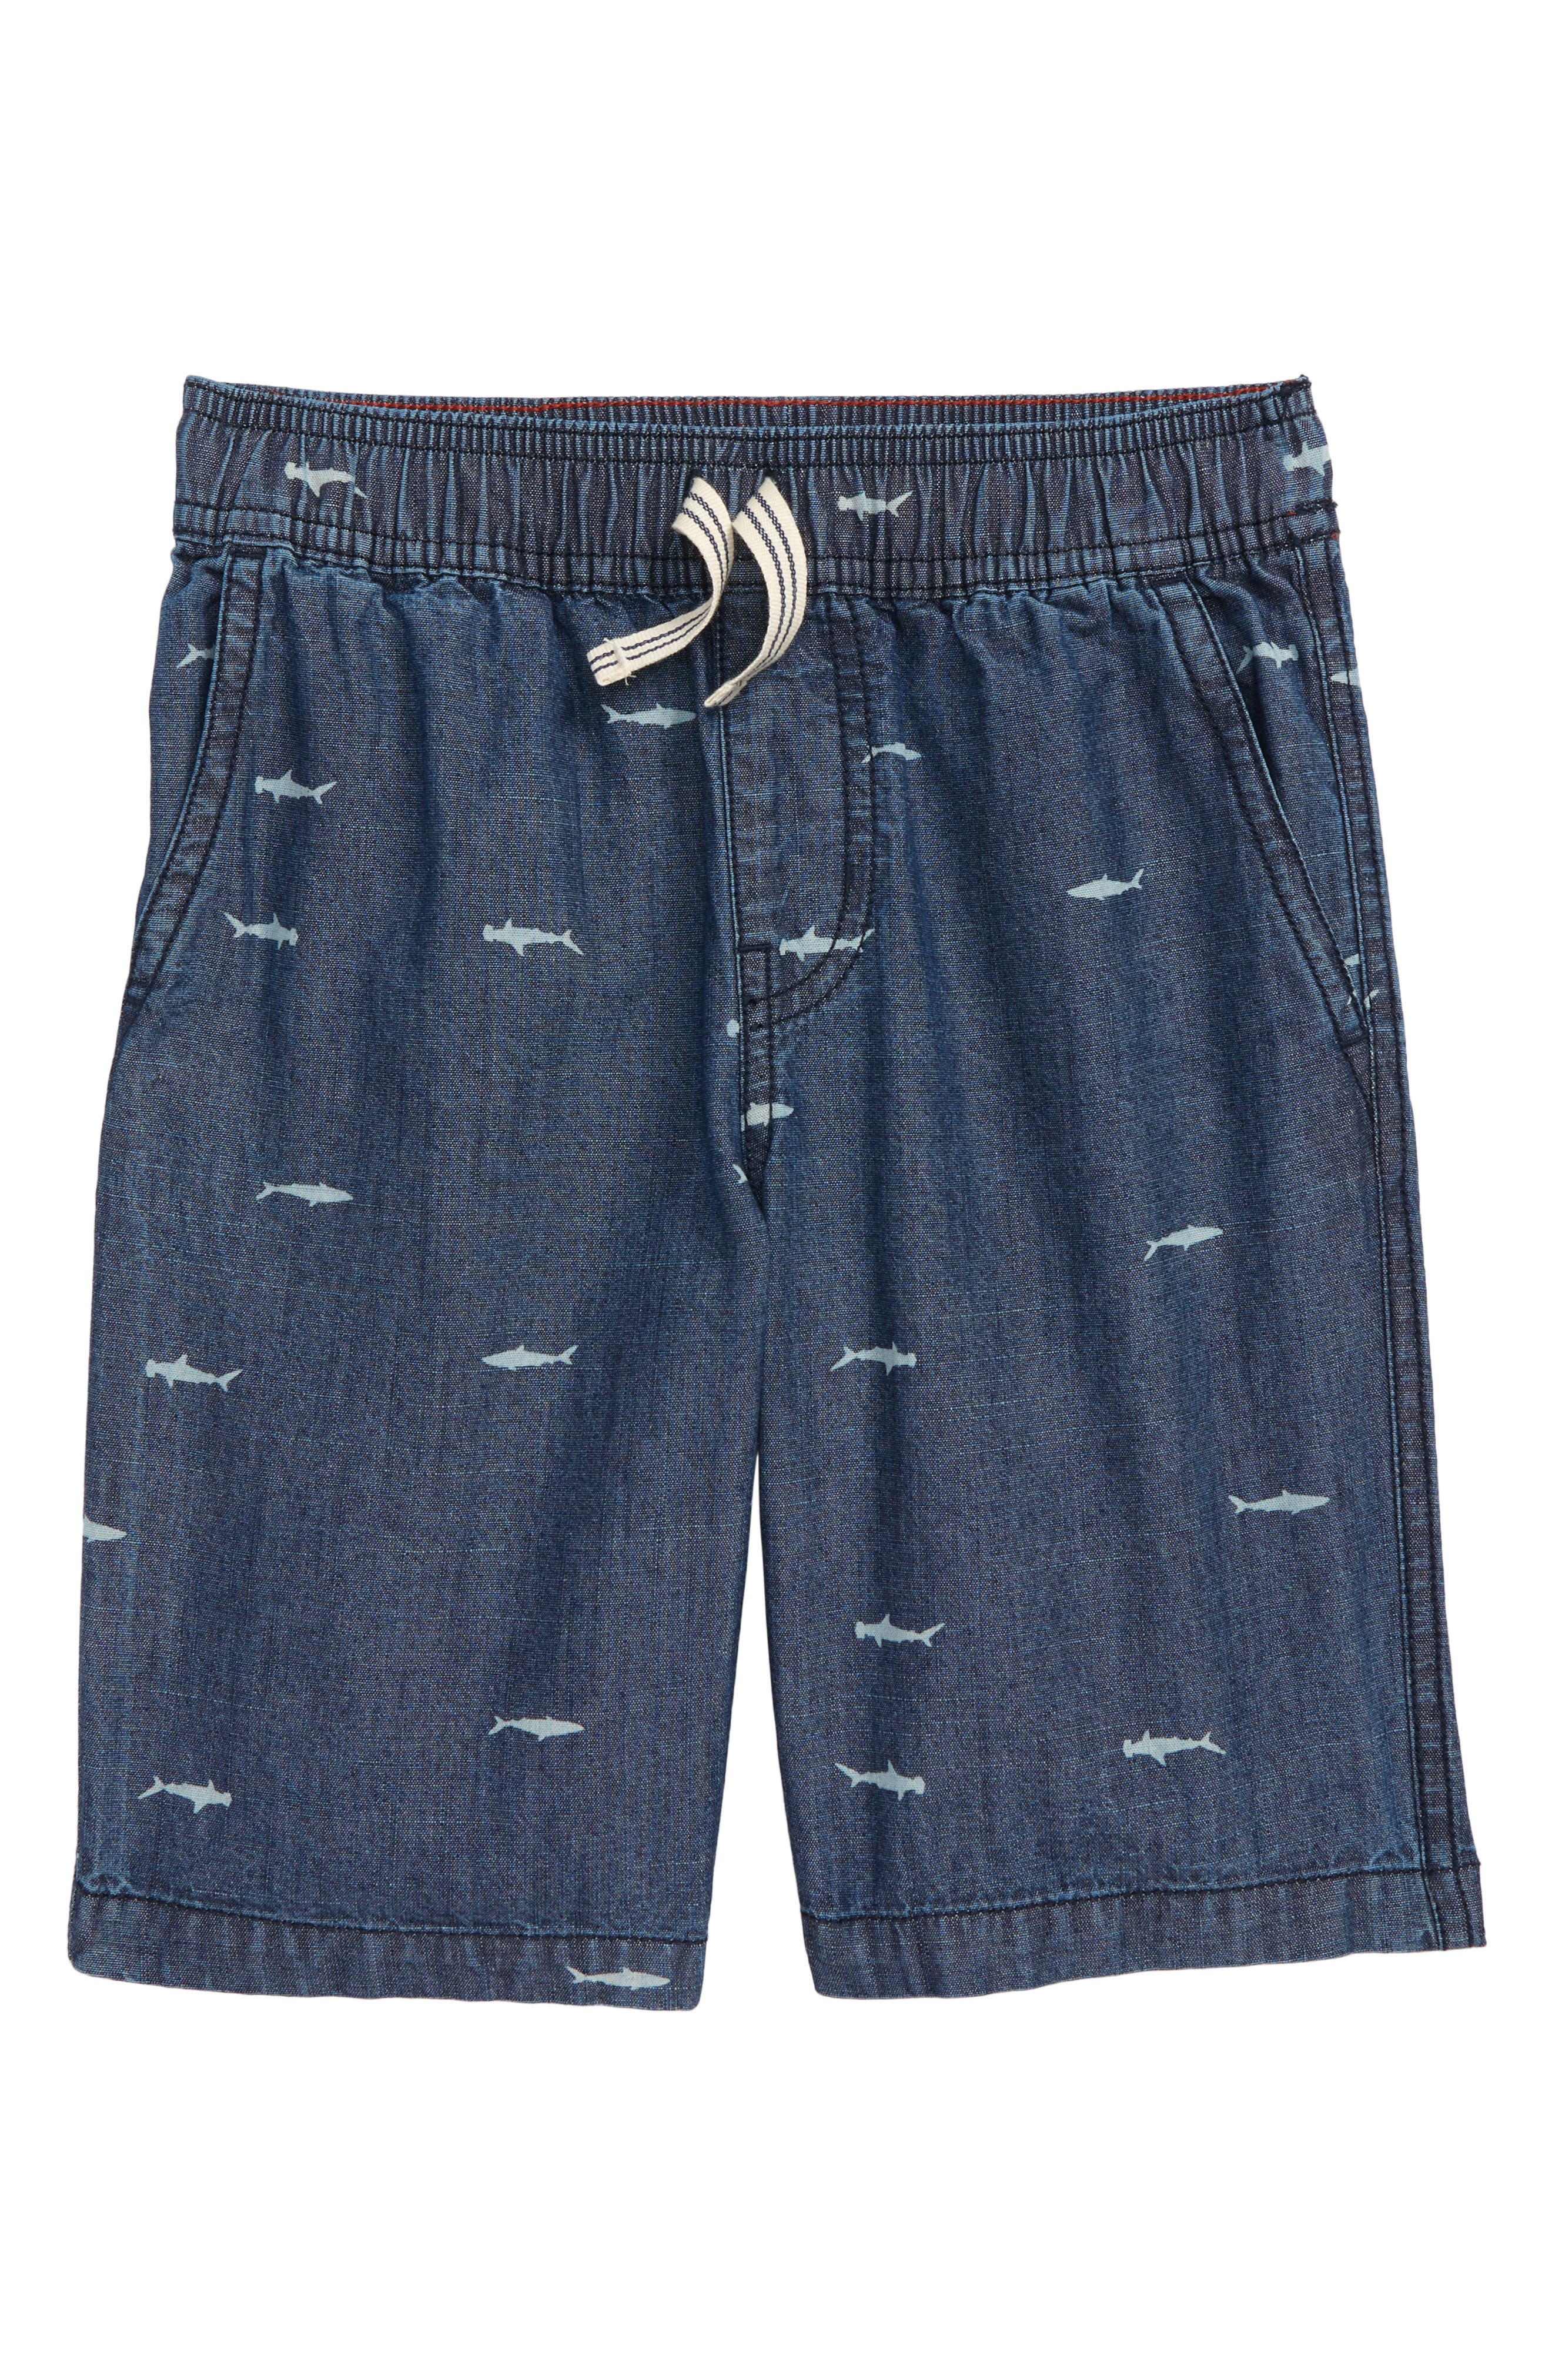 Tea Collection Chambray Discover Shorts